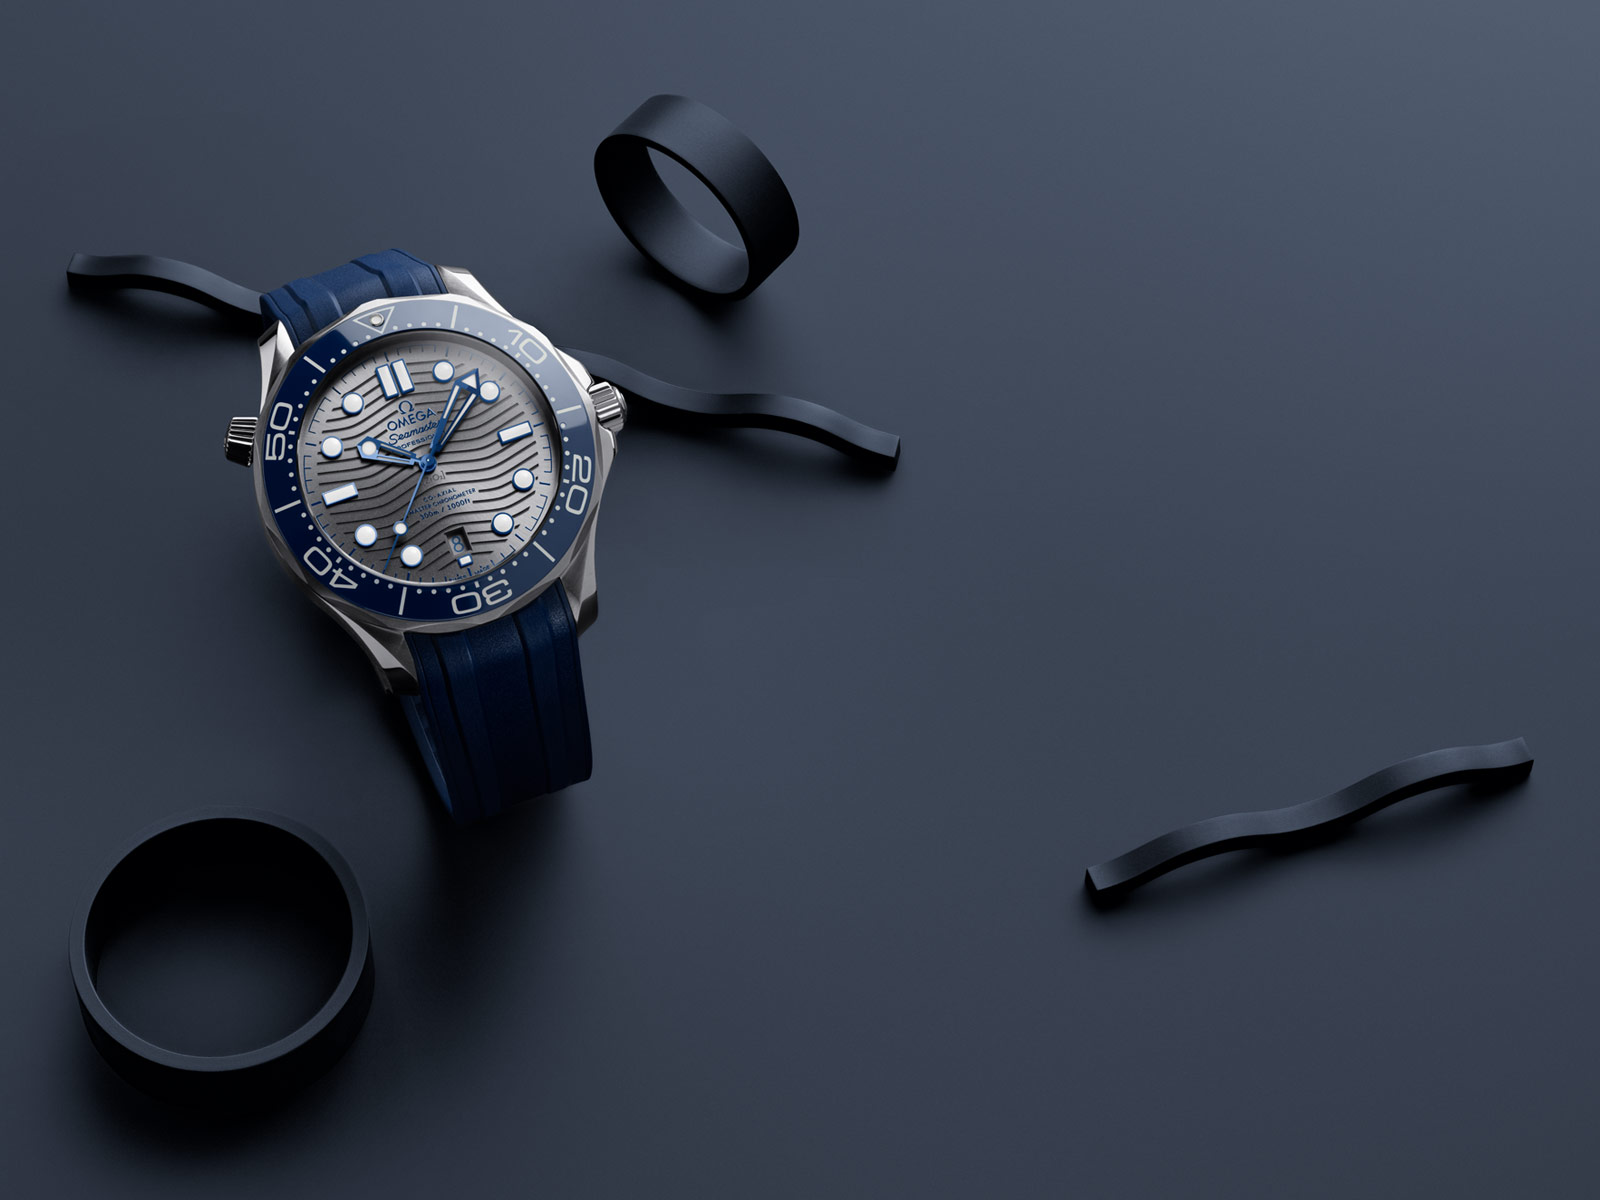 SEAMASTER DIVER 300M COLLECTION